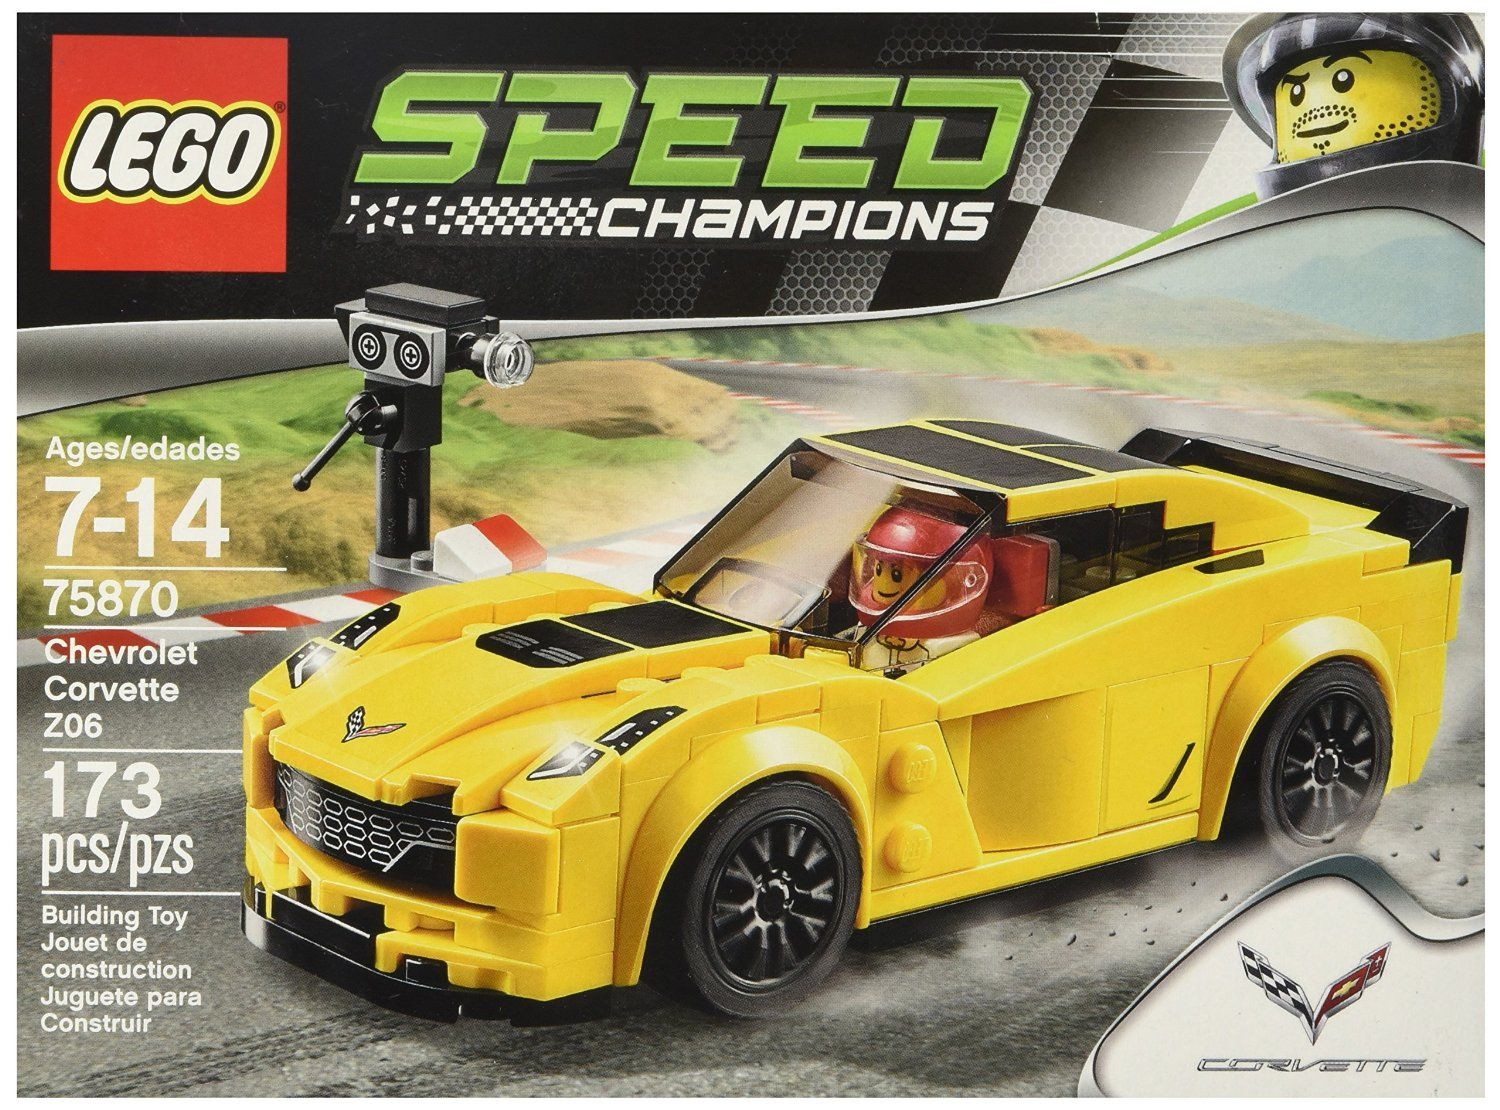 Gifts For 7 Year Old Boys Chevrolet Corvette Z06 Lego Speed